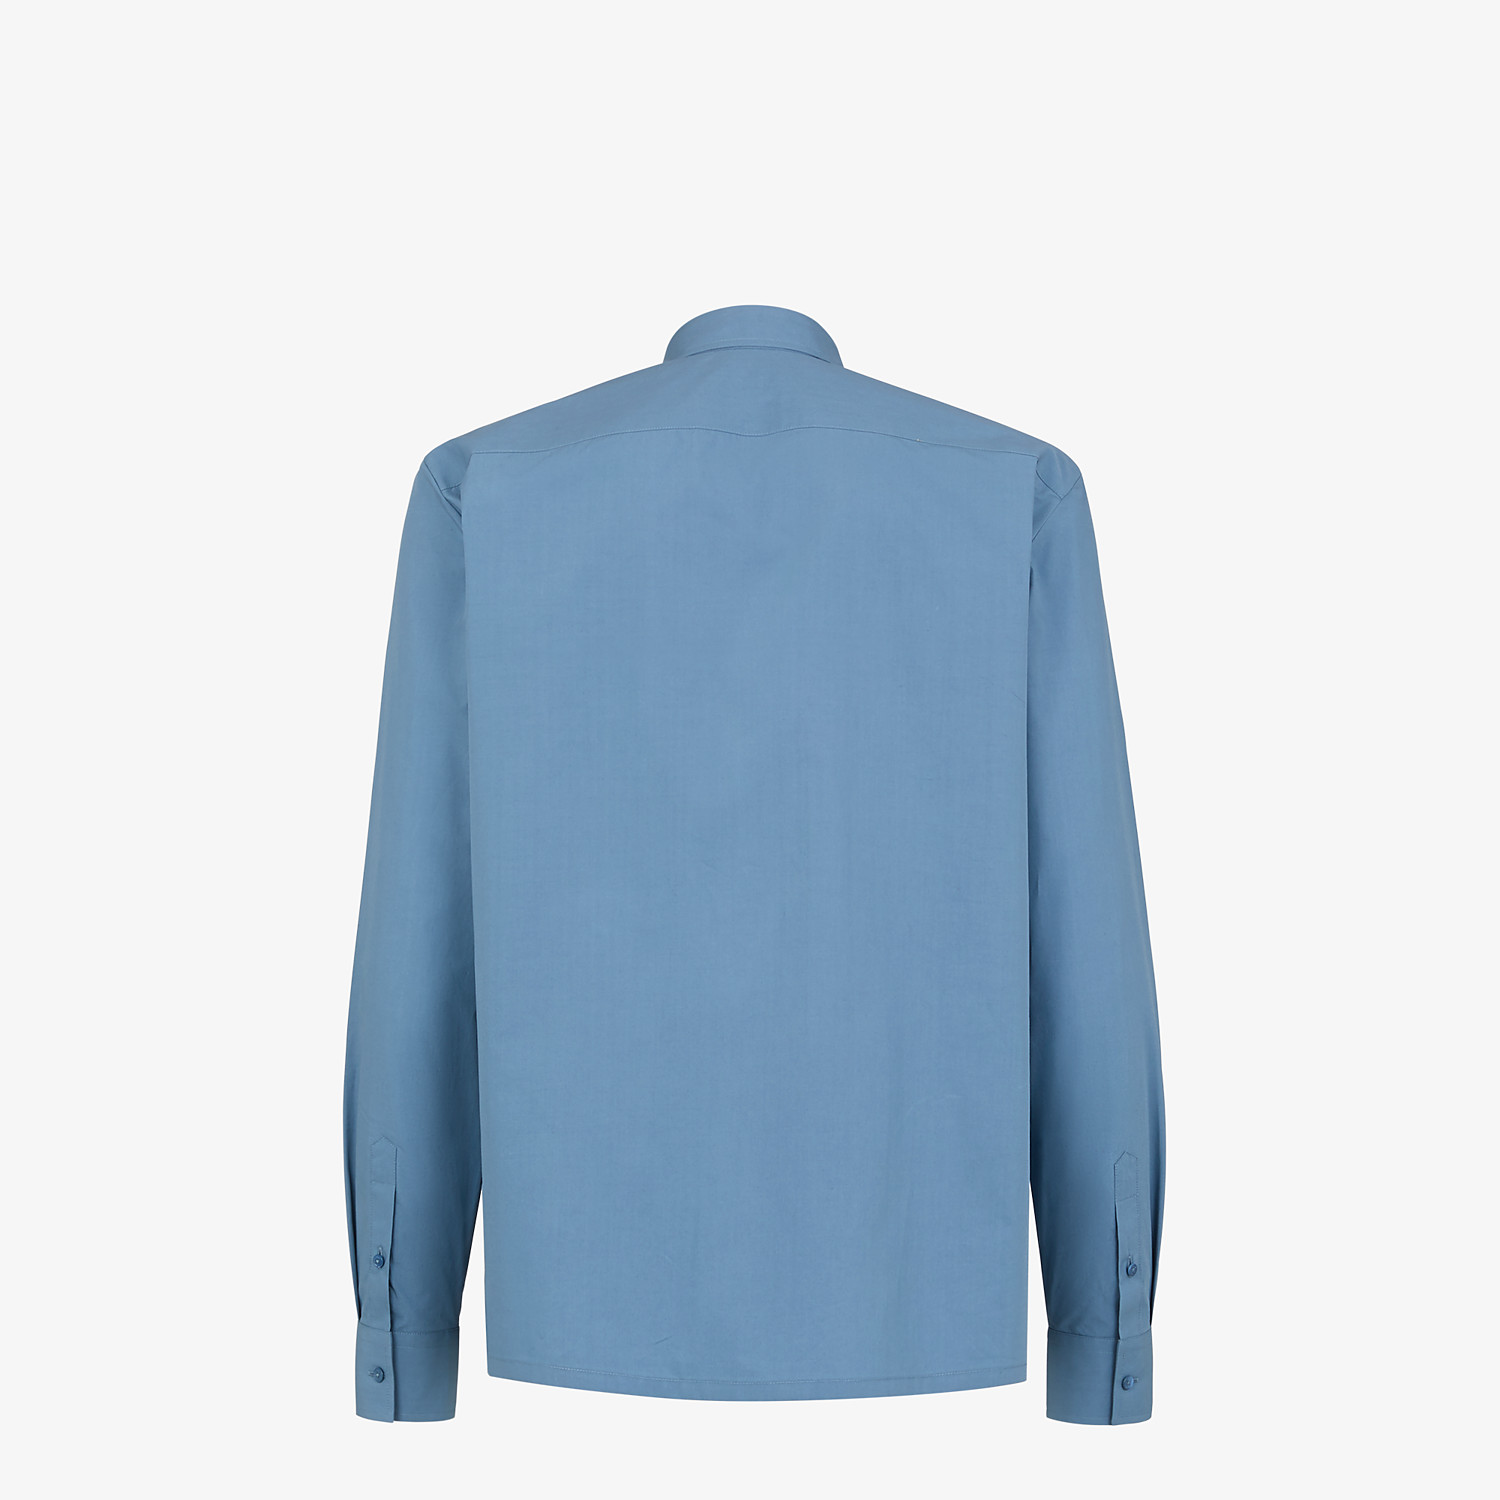 FENDI SHIRT - Light blue cotton shirt - view 2 detail